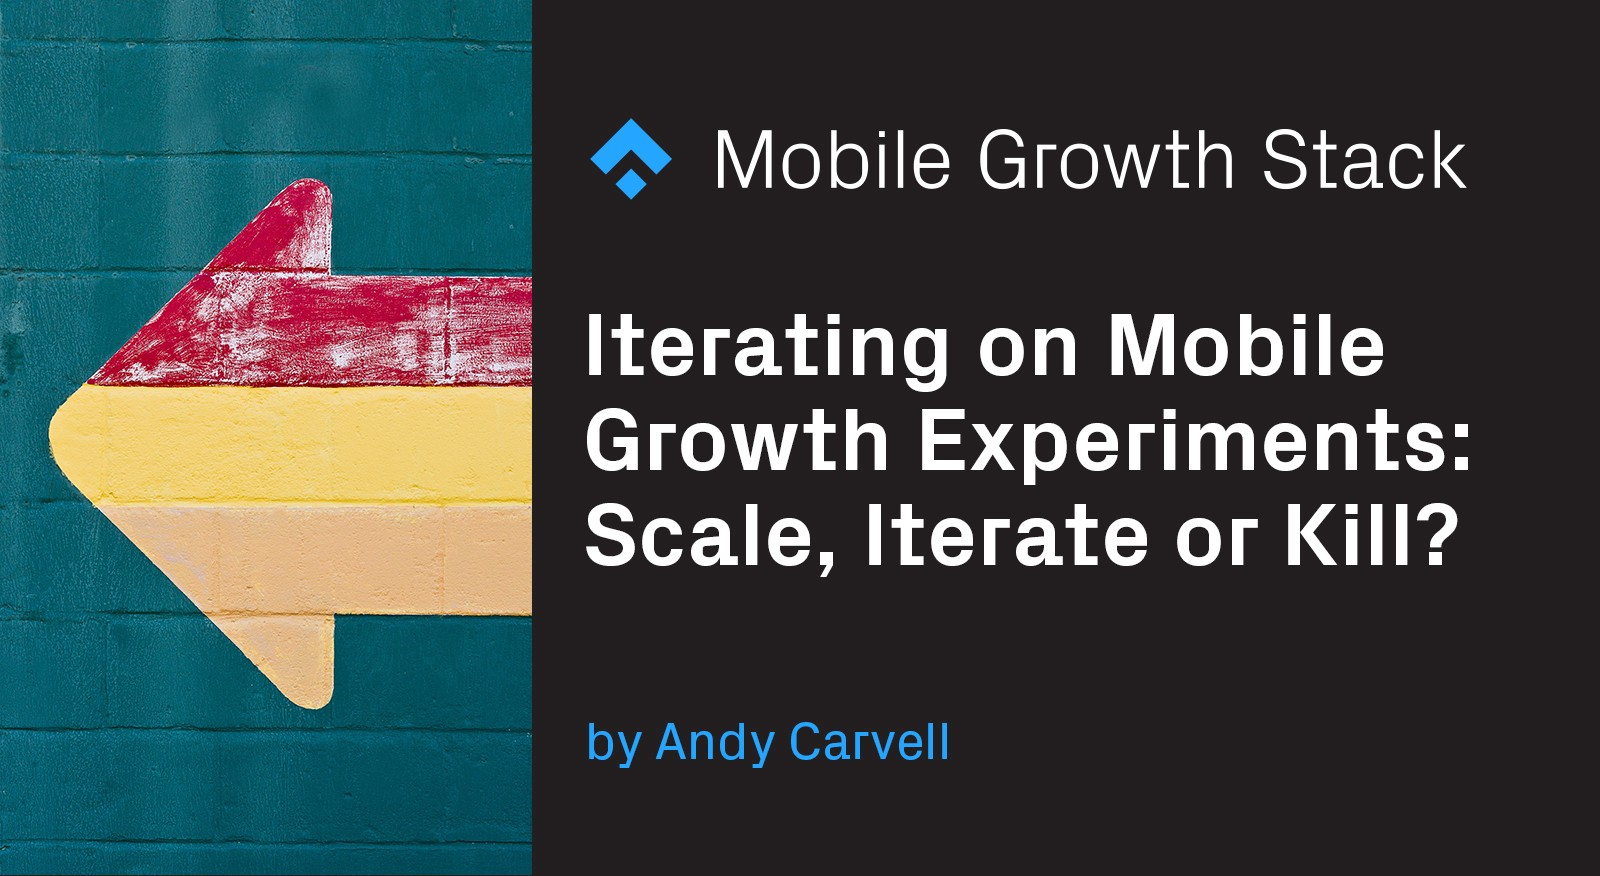 Iterating on Mobile Growth Experiments- Scale, Iterate or Kill?